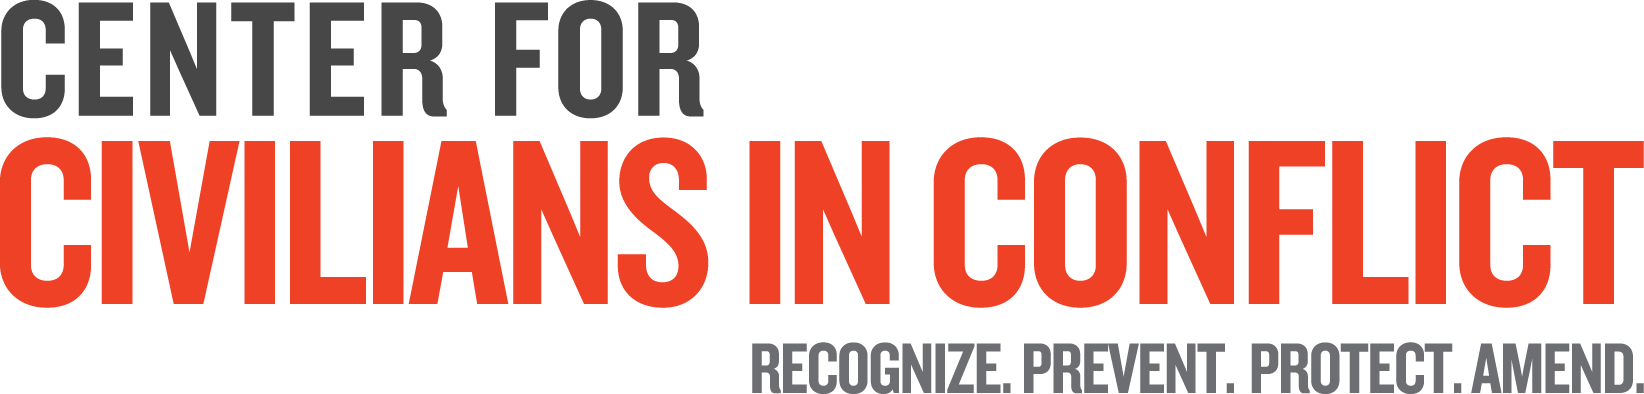 Civic - Campaign For Innocent Victims In Conflict logo